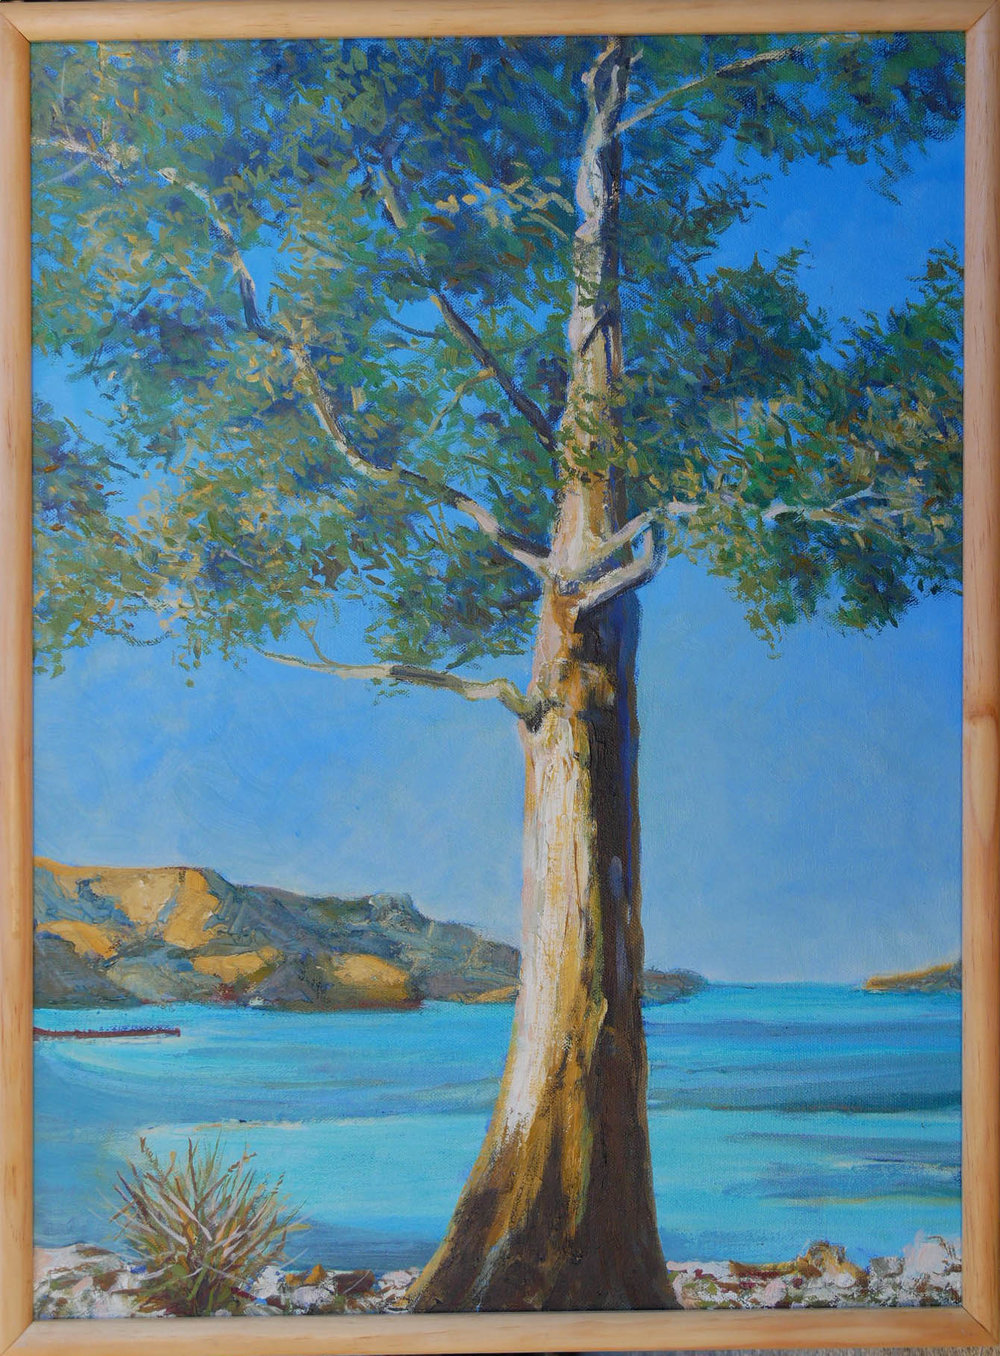 Lot 8: The Old Gum Tree - 460mm x 600mmOil